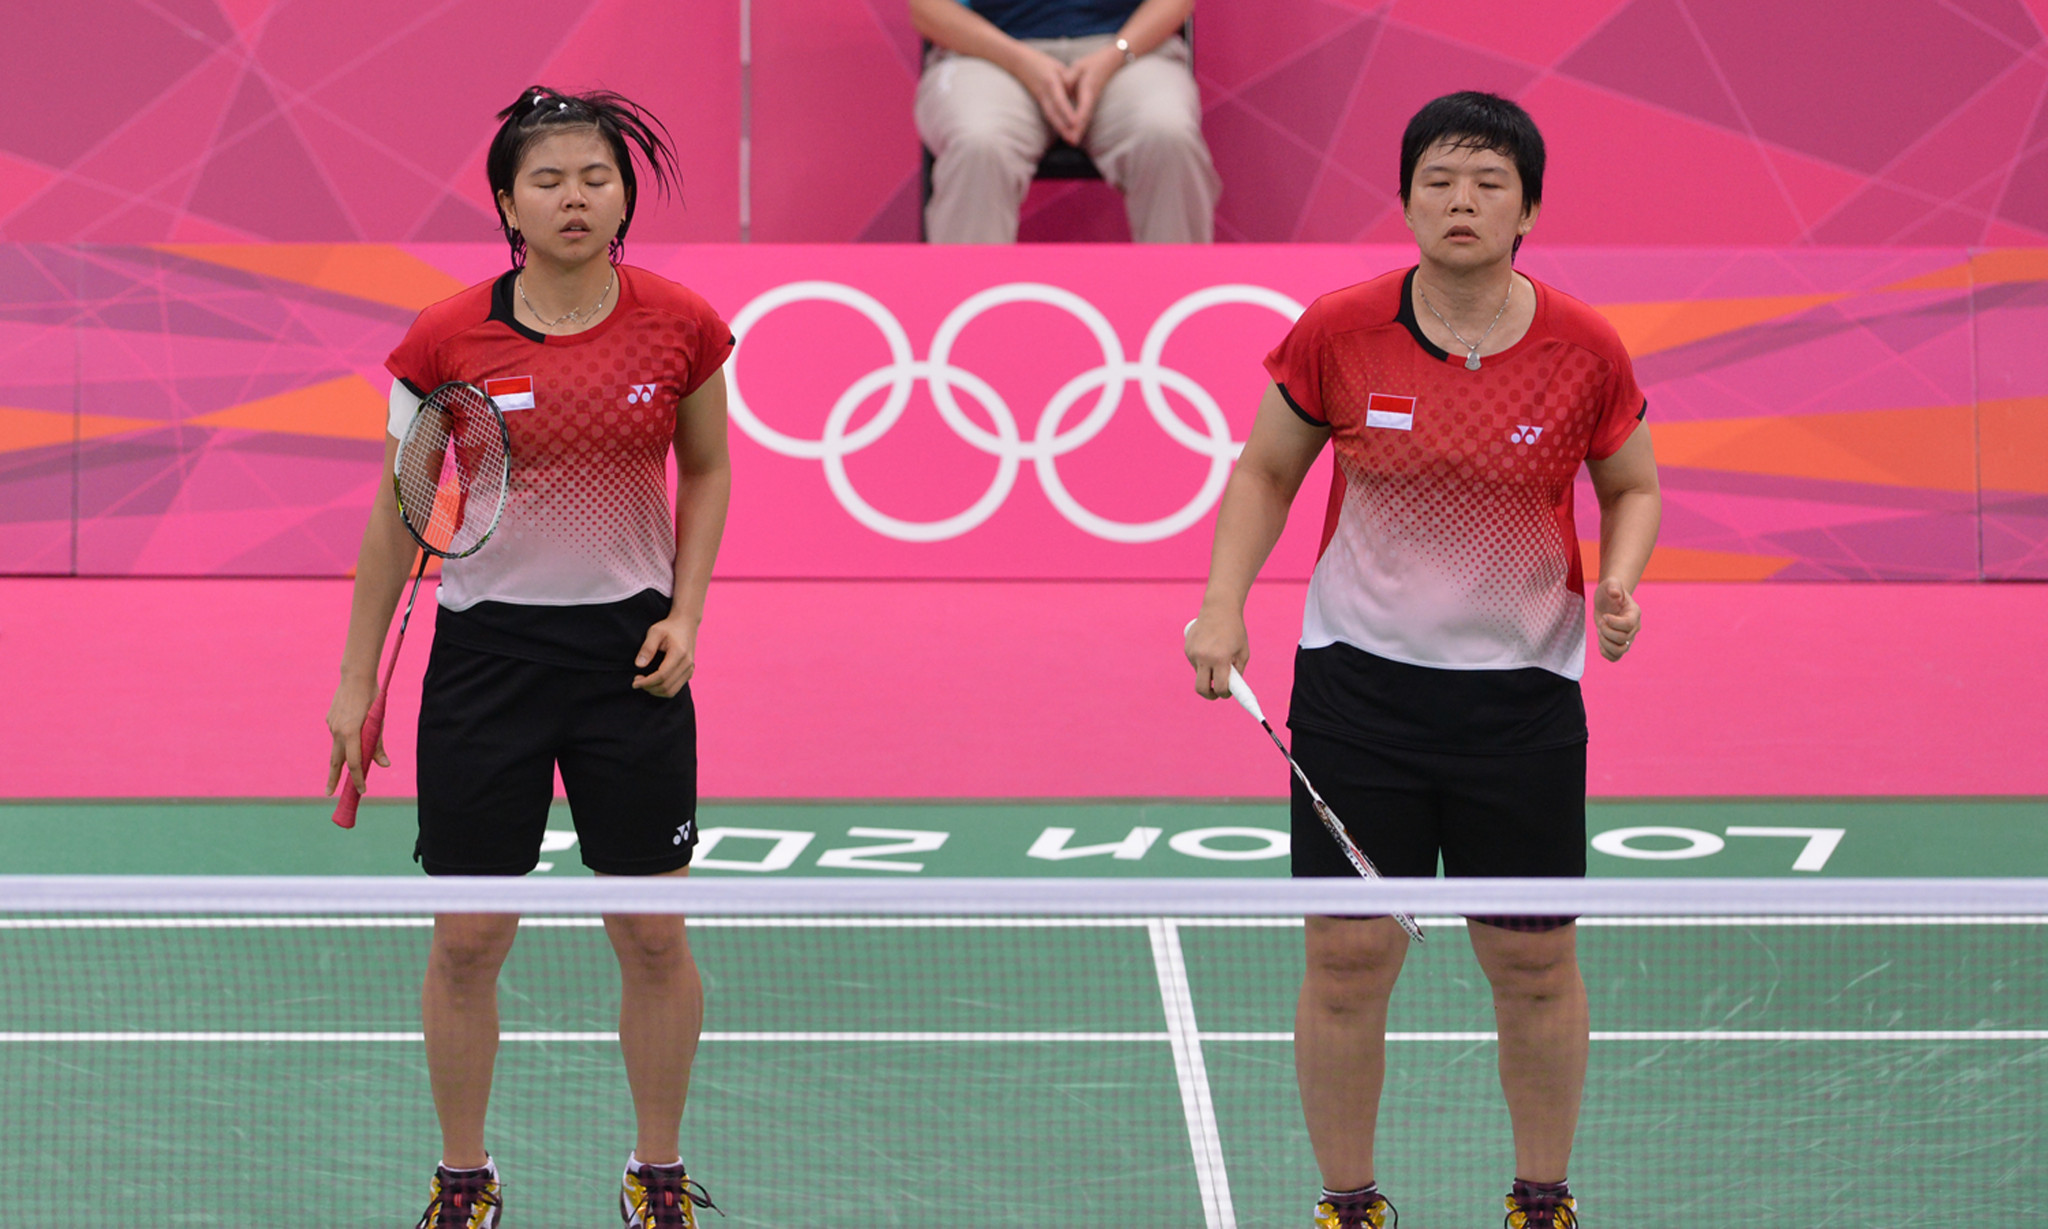 Greysia Polii, left, and Meiliana Jauhari, right, were involved in a disputed match at London 2012 ©Getty Images